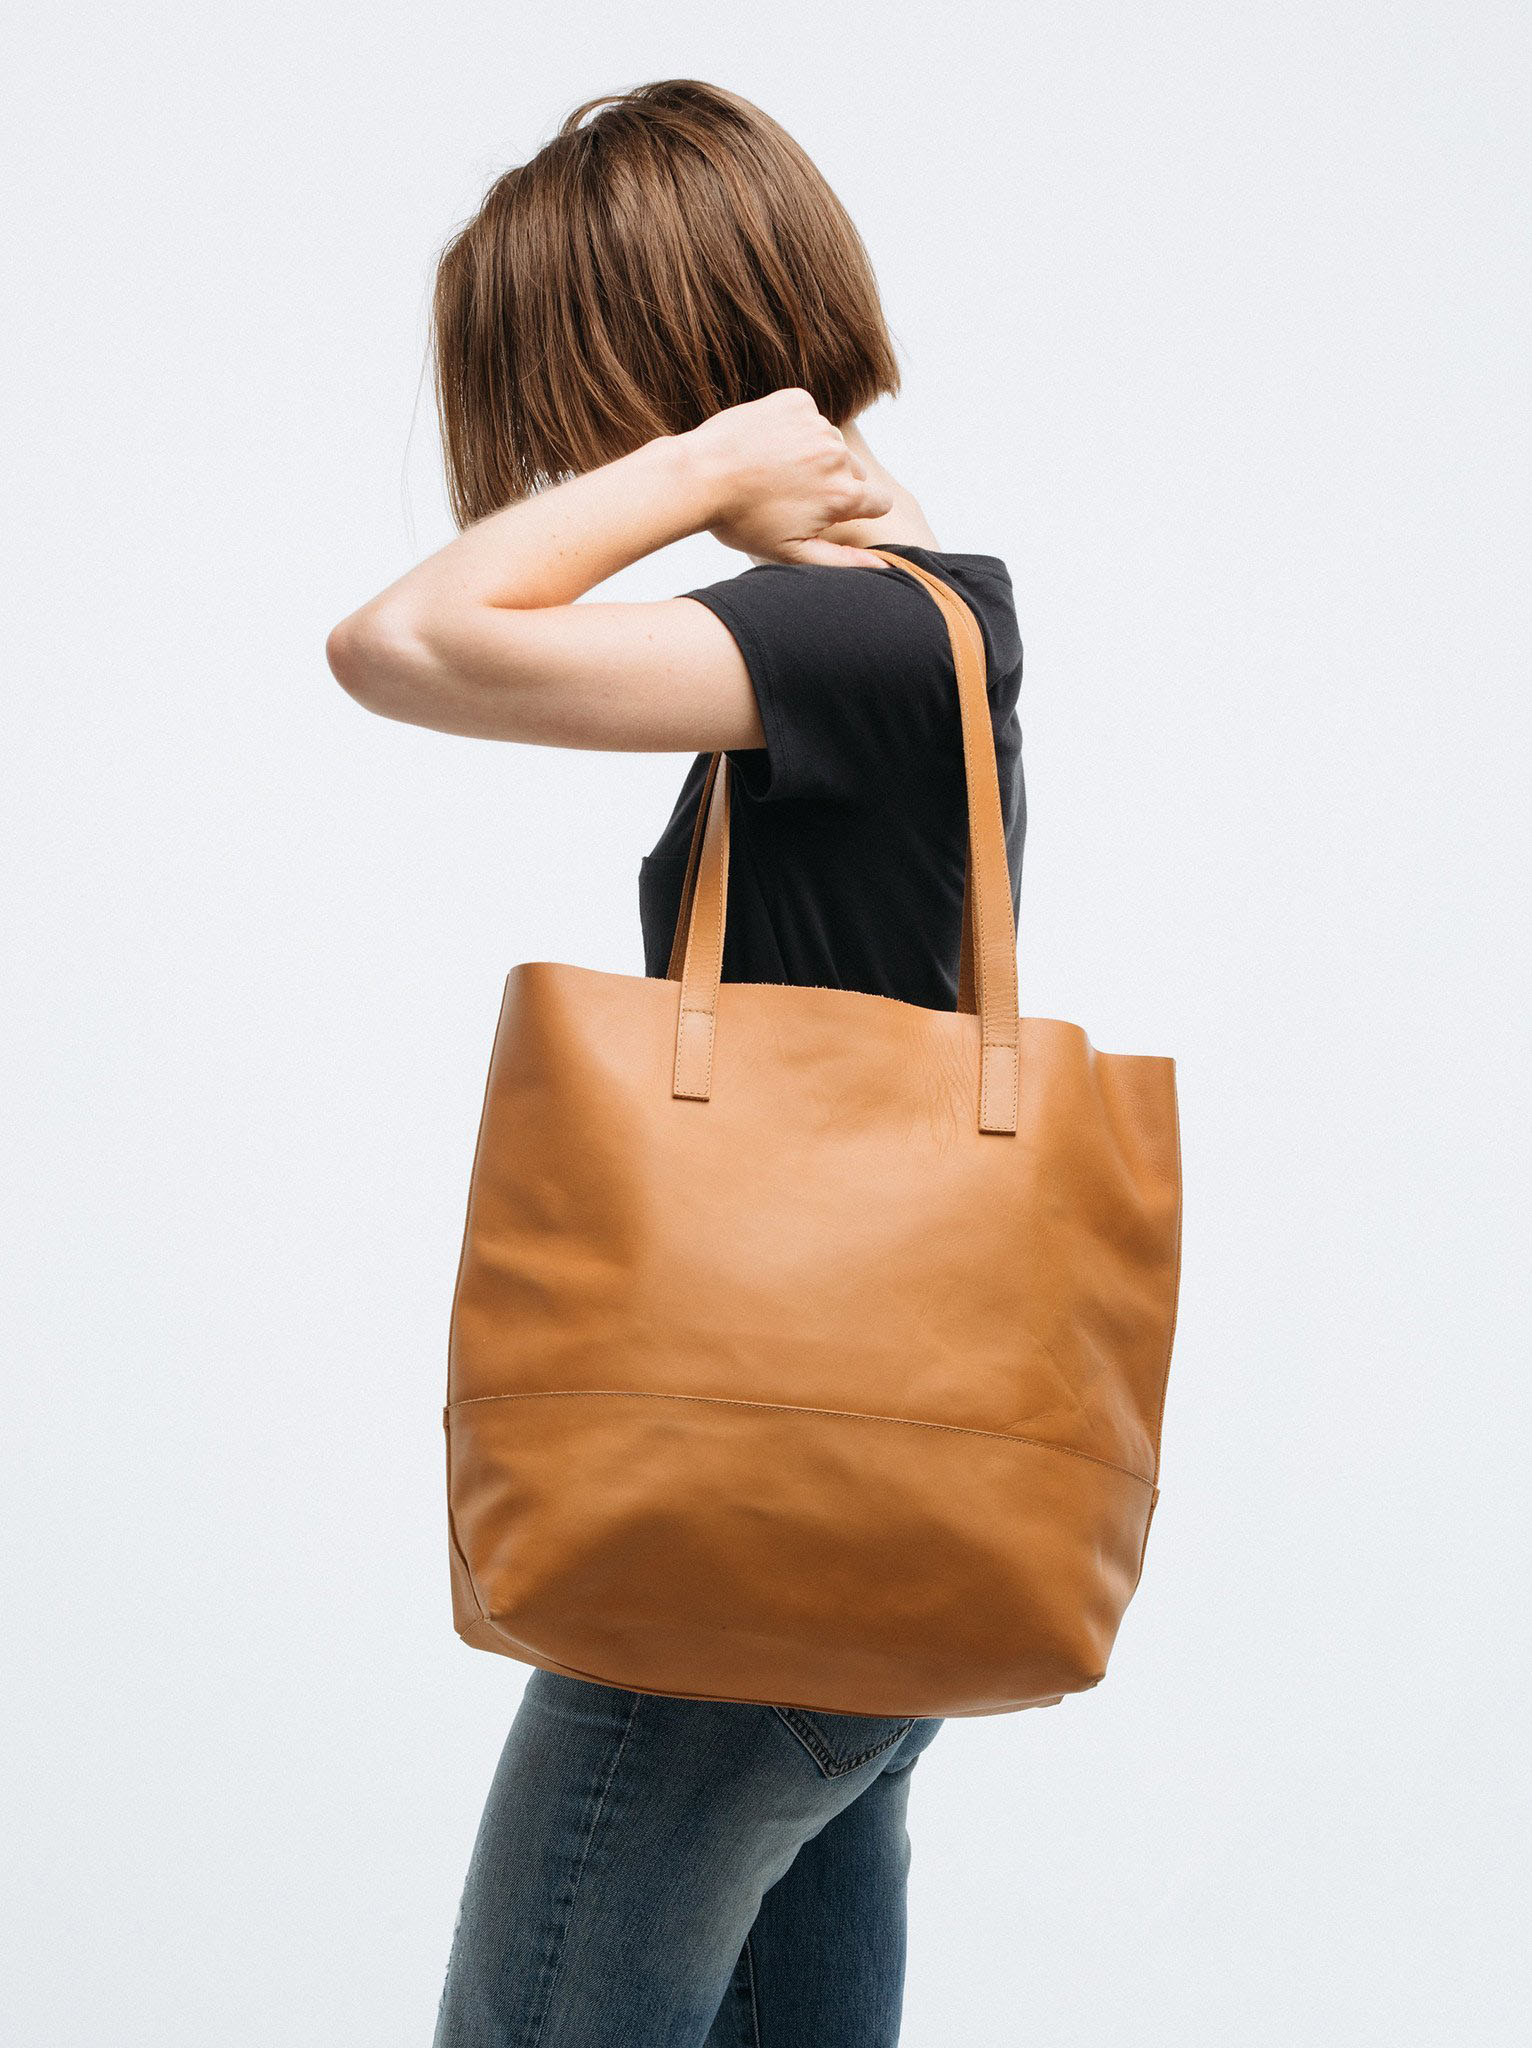 Able_Leather_Bag.jpg